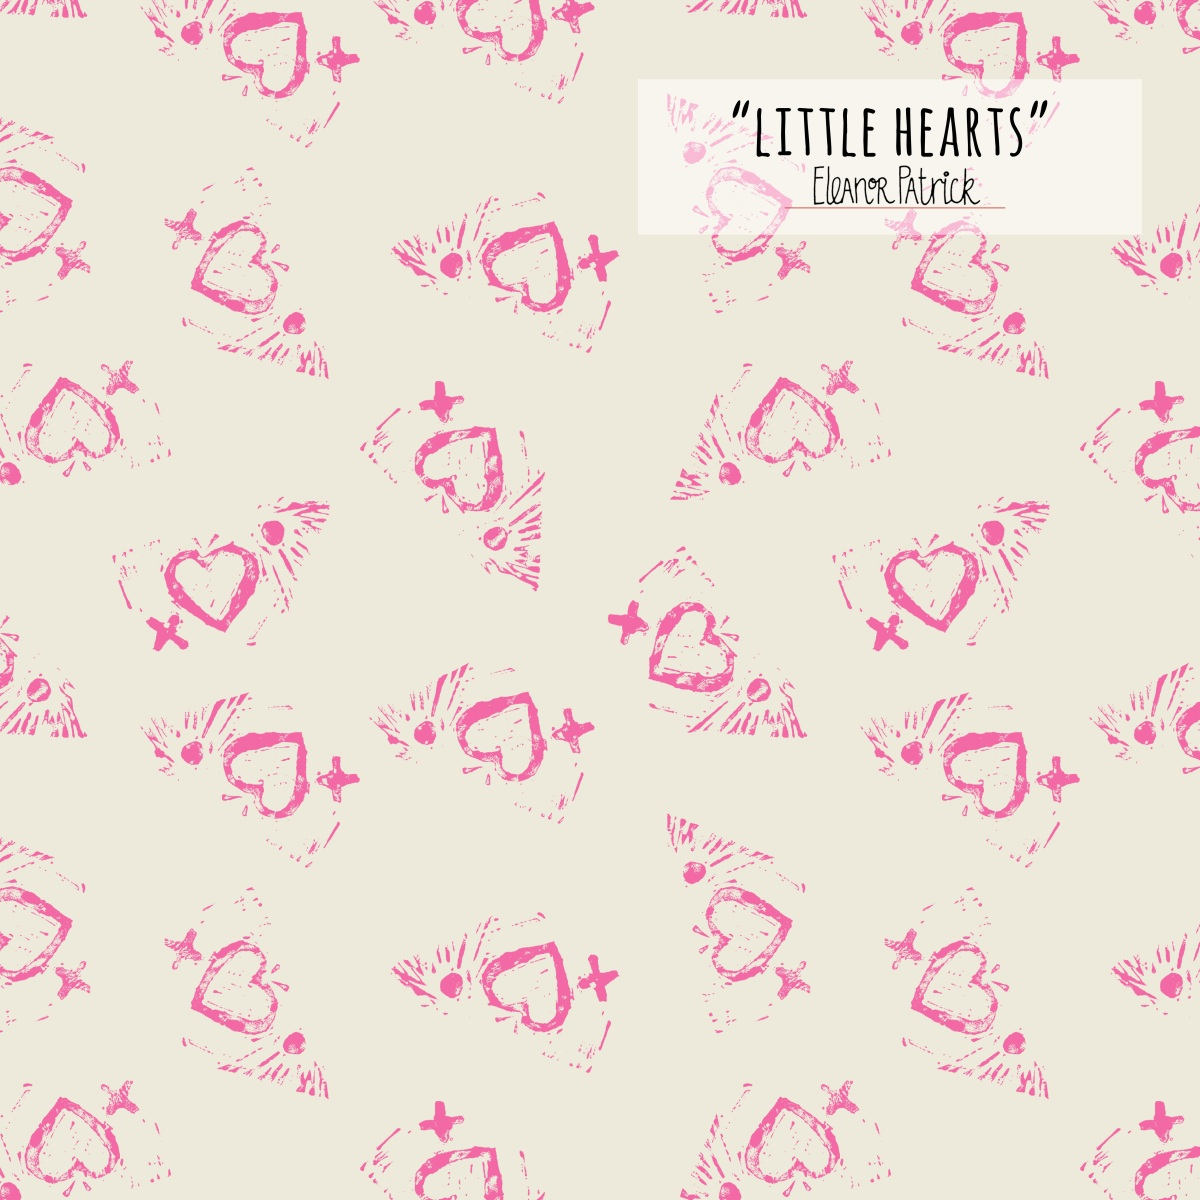 little hearts sample